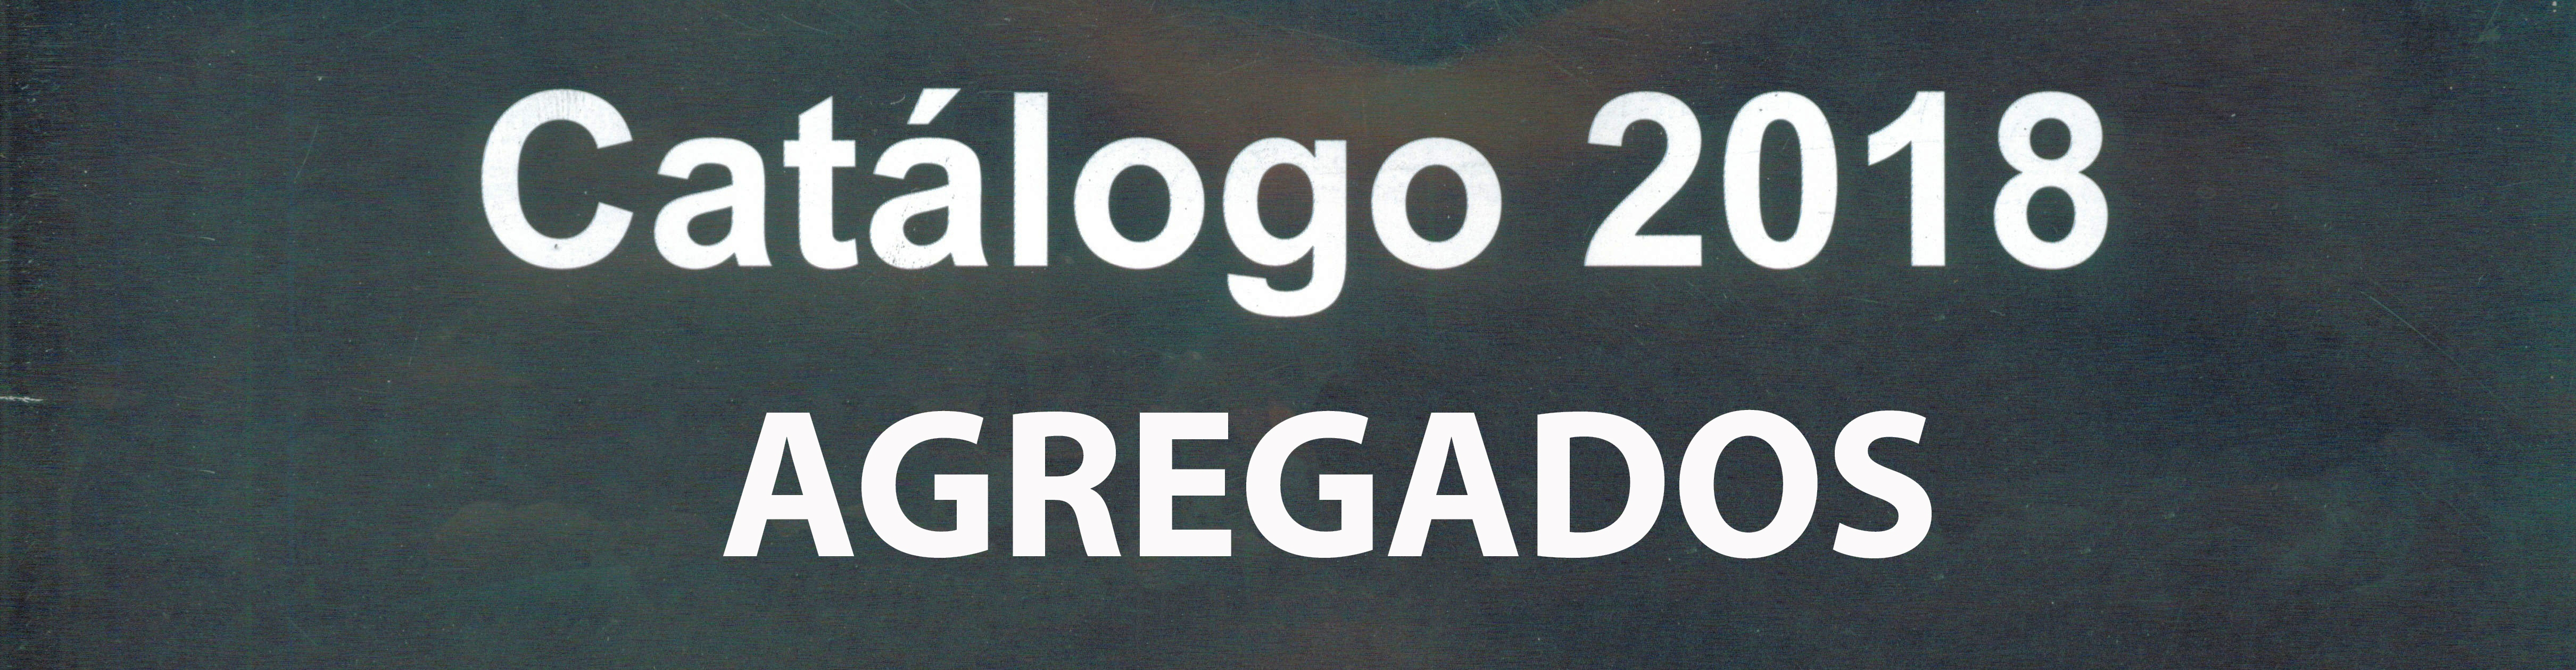 AGREGADOS CATALOGO 2018 (FEBRERO 2020)